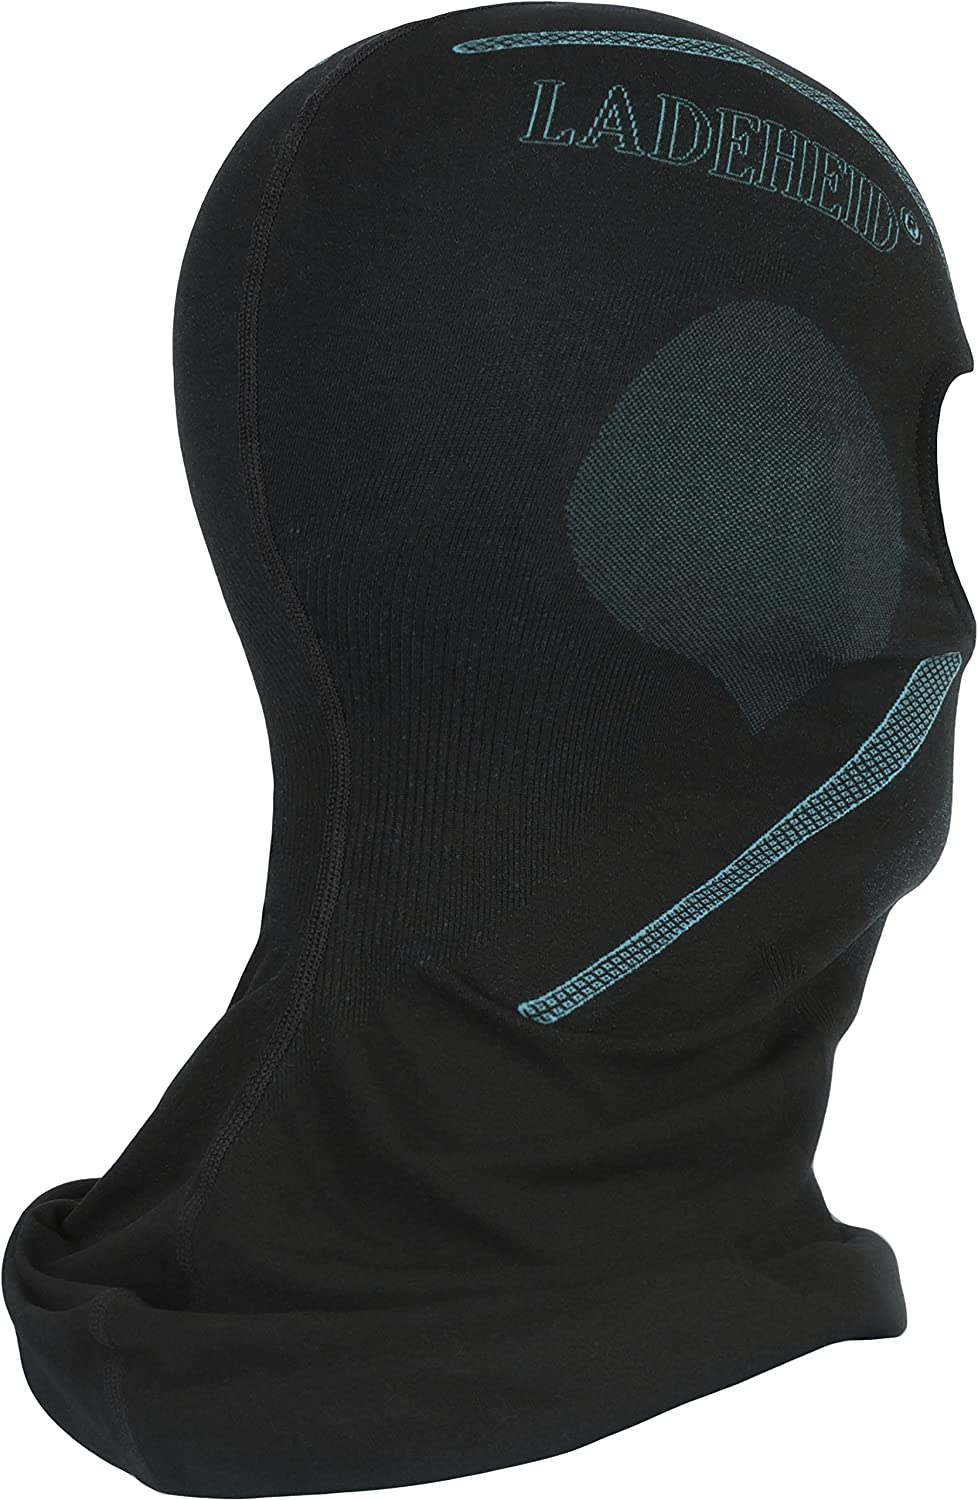 Ladeheid Cagoule Thermoactive Passe-montagne